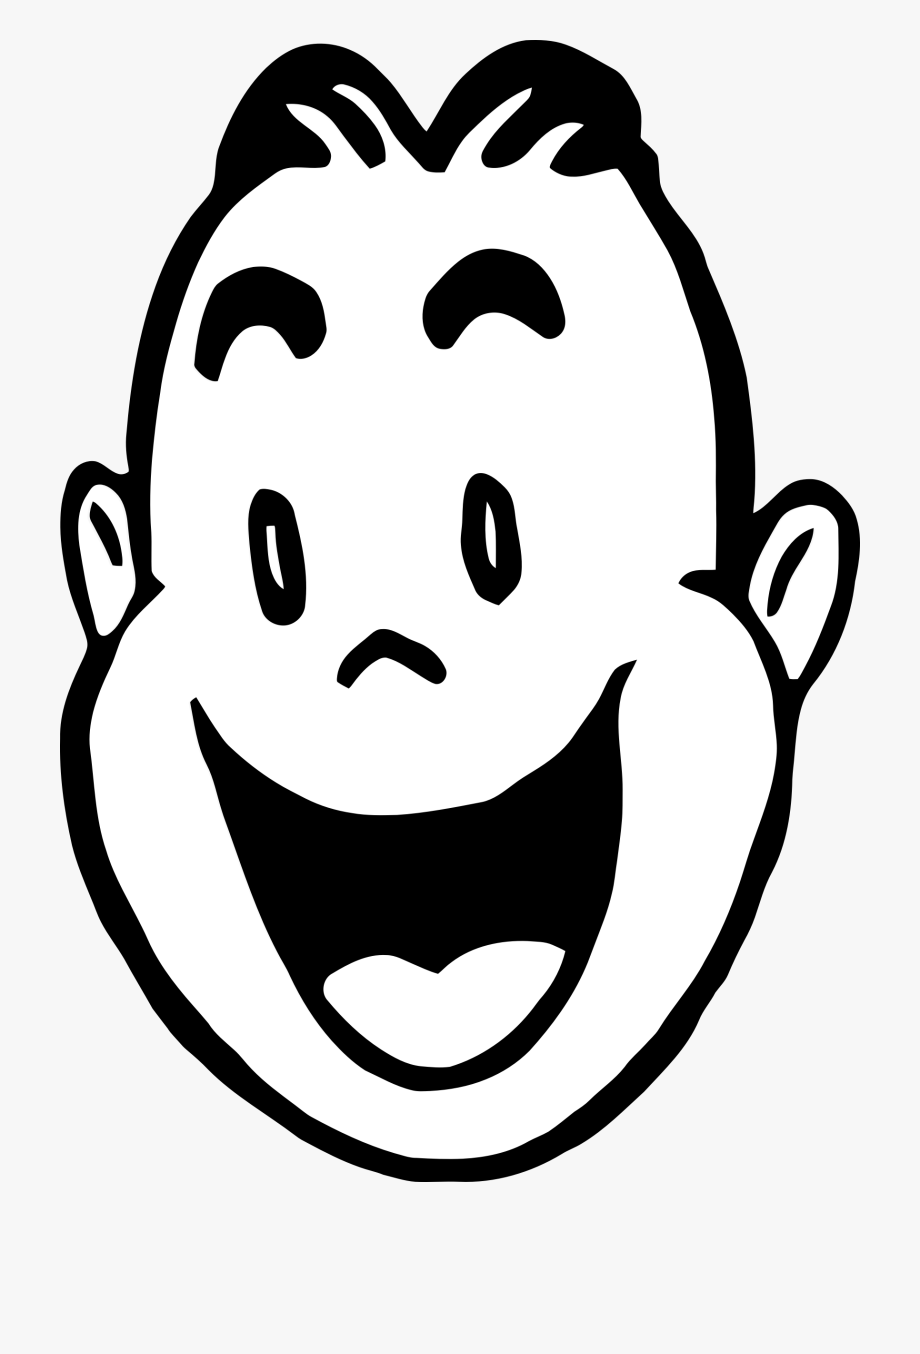 Png Free Smiling Clipart Glad.